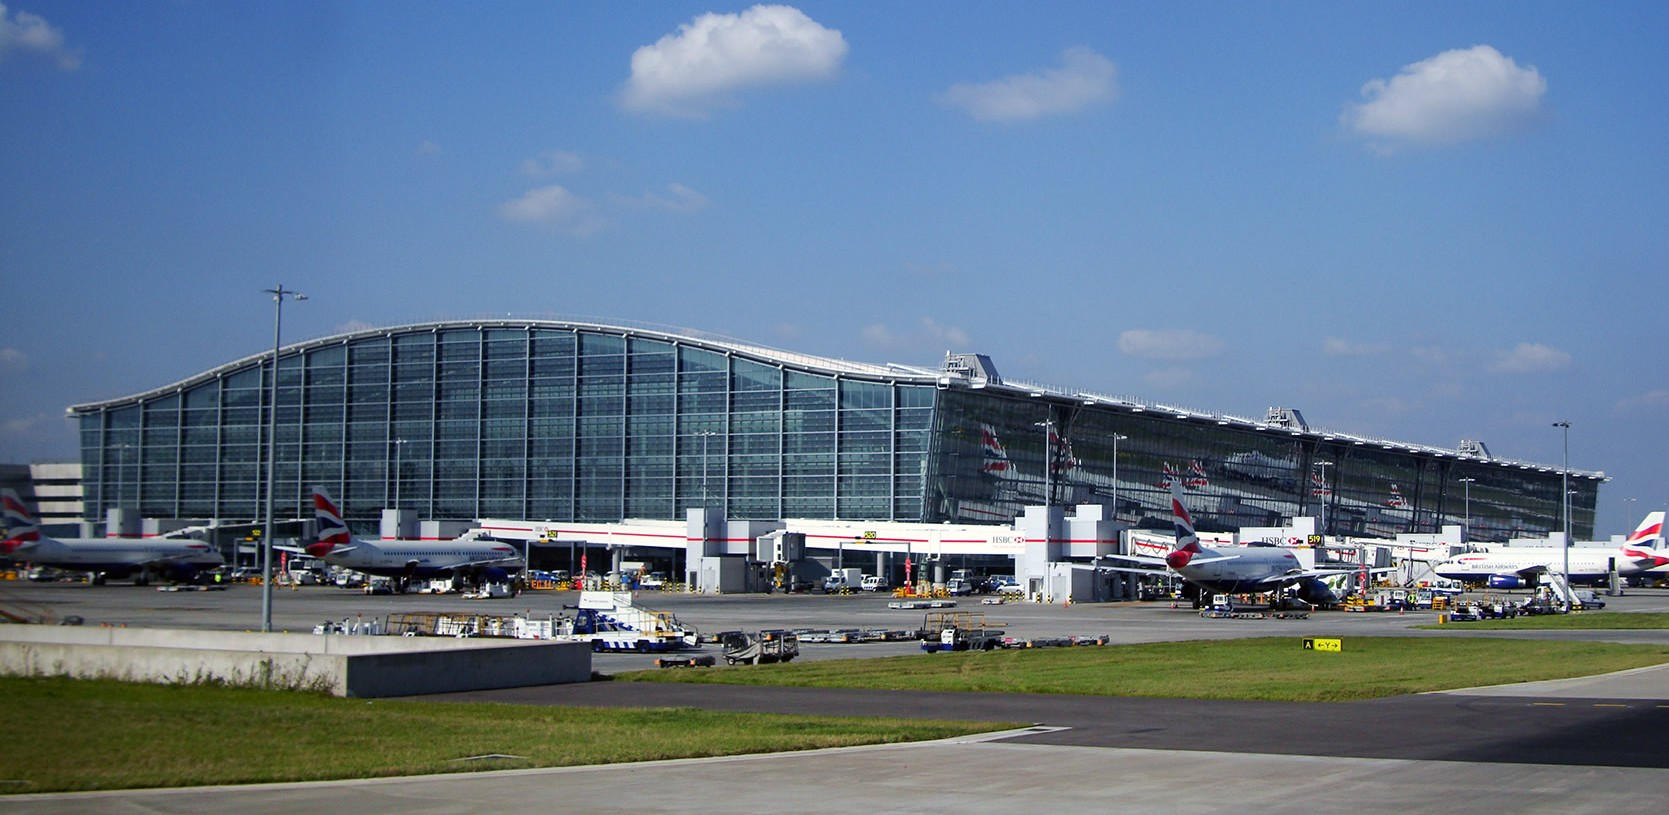 Heathrow aeroporto by wikipedia